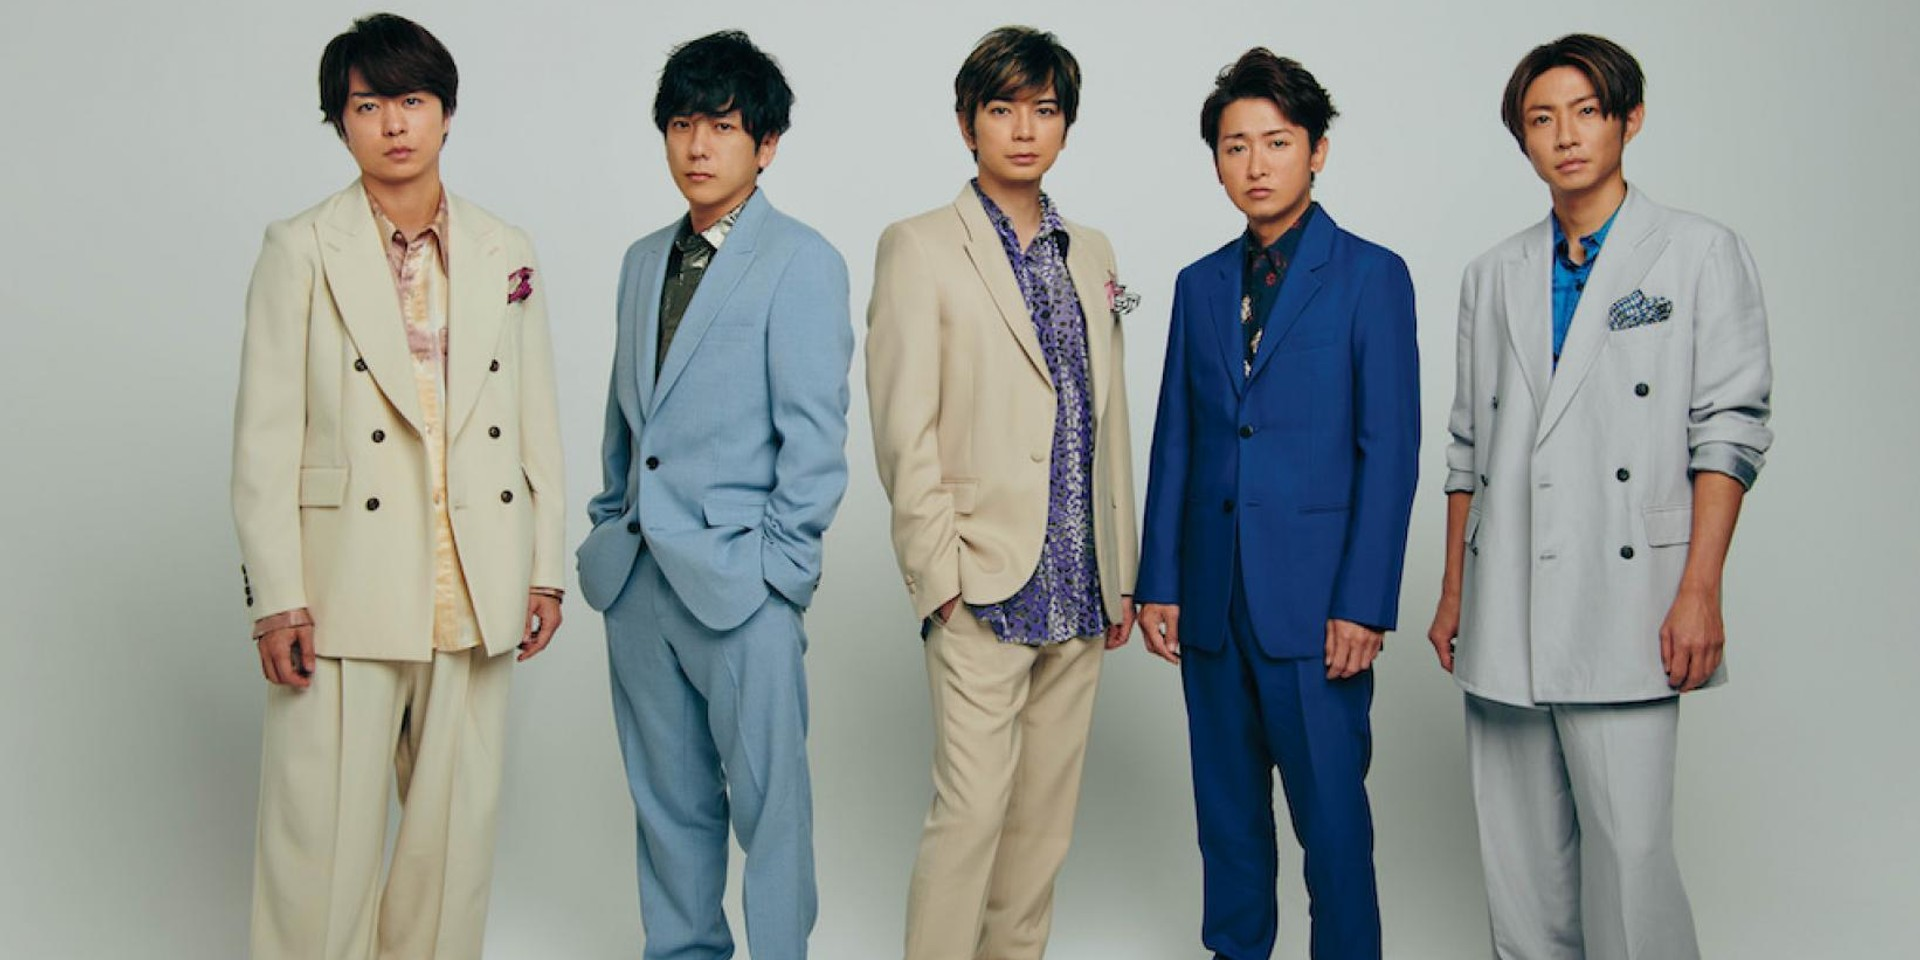 ARASHI fans set up Twitter parties and fan projects to say 'Thank You ARASHI' ahead of the band's upcoming hiatus